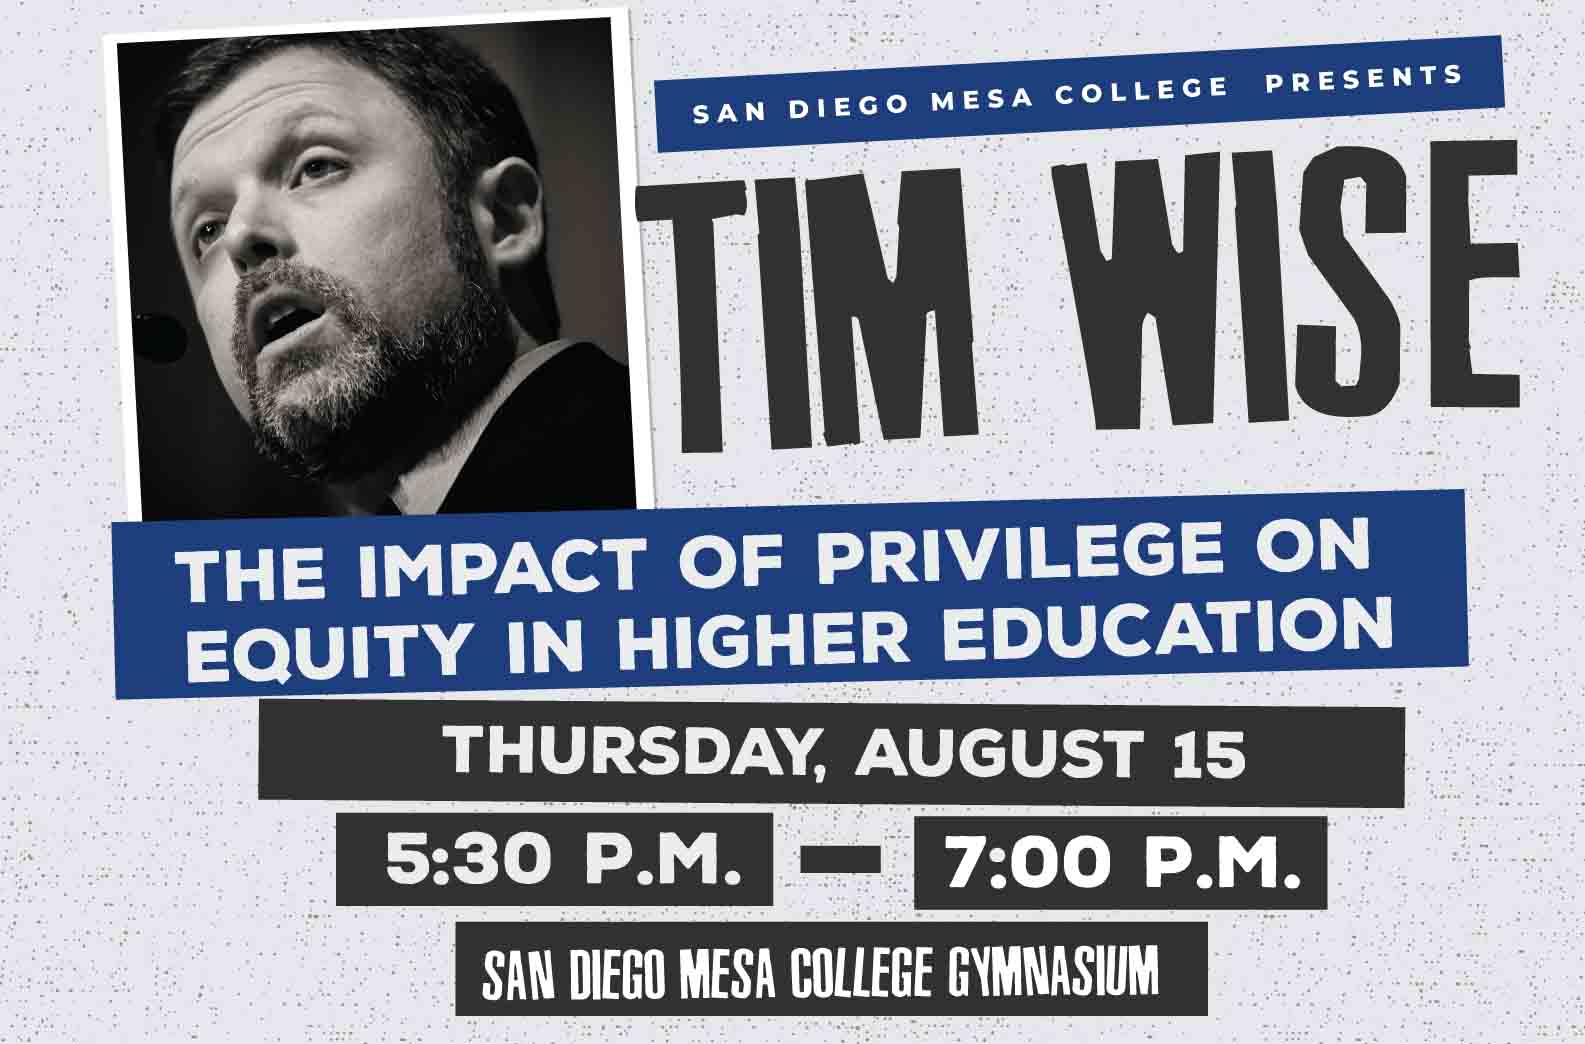 Tim Wise - The impact of privilege on equity in higher education